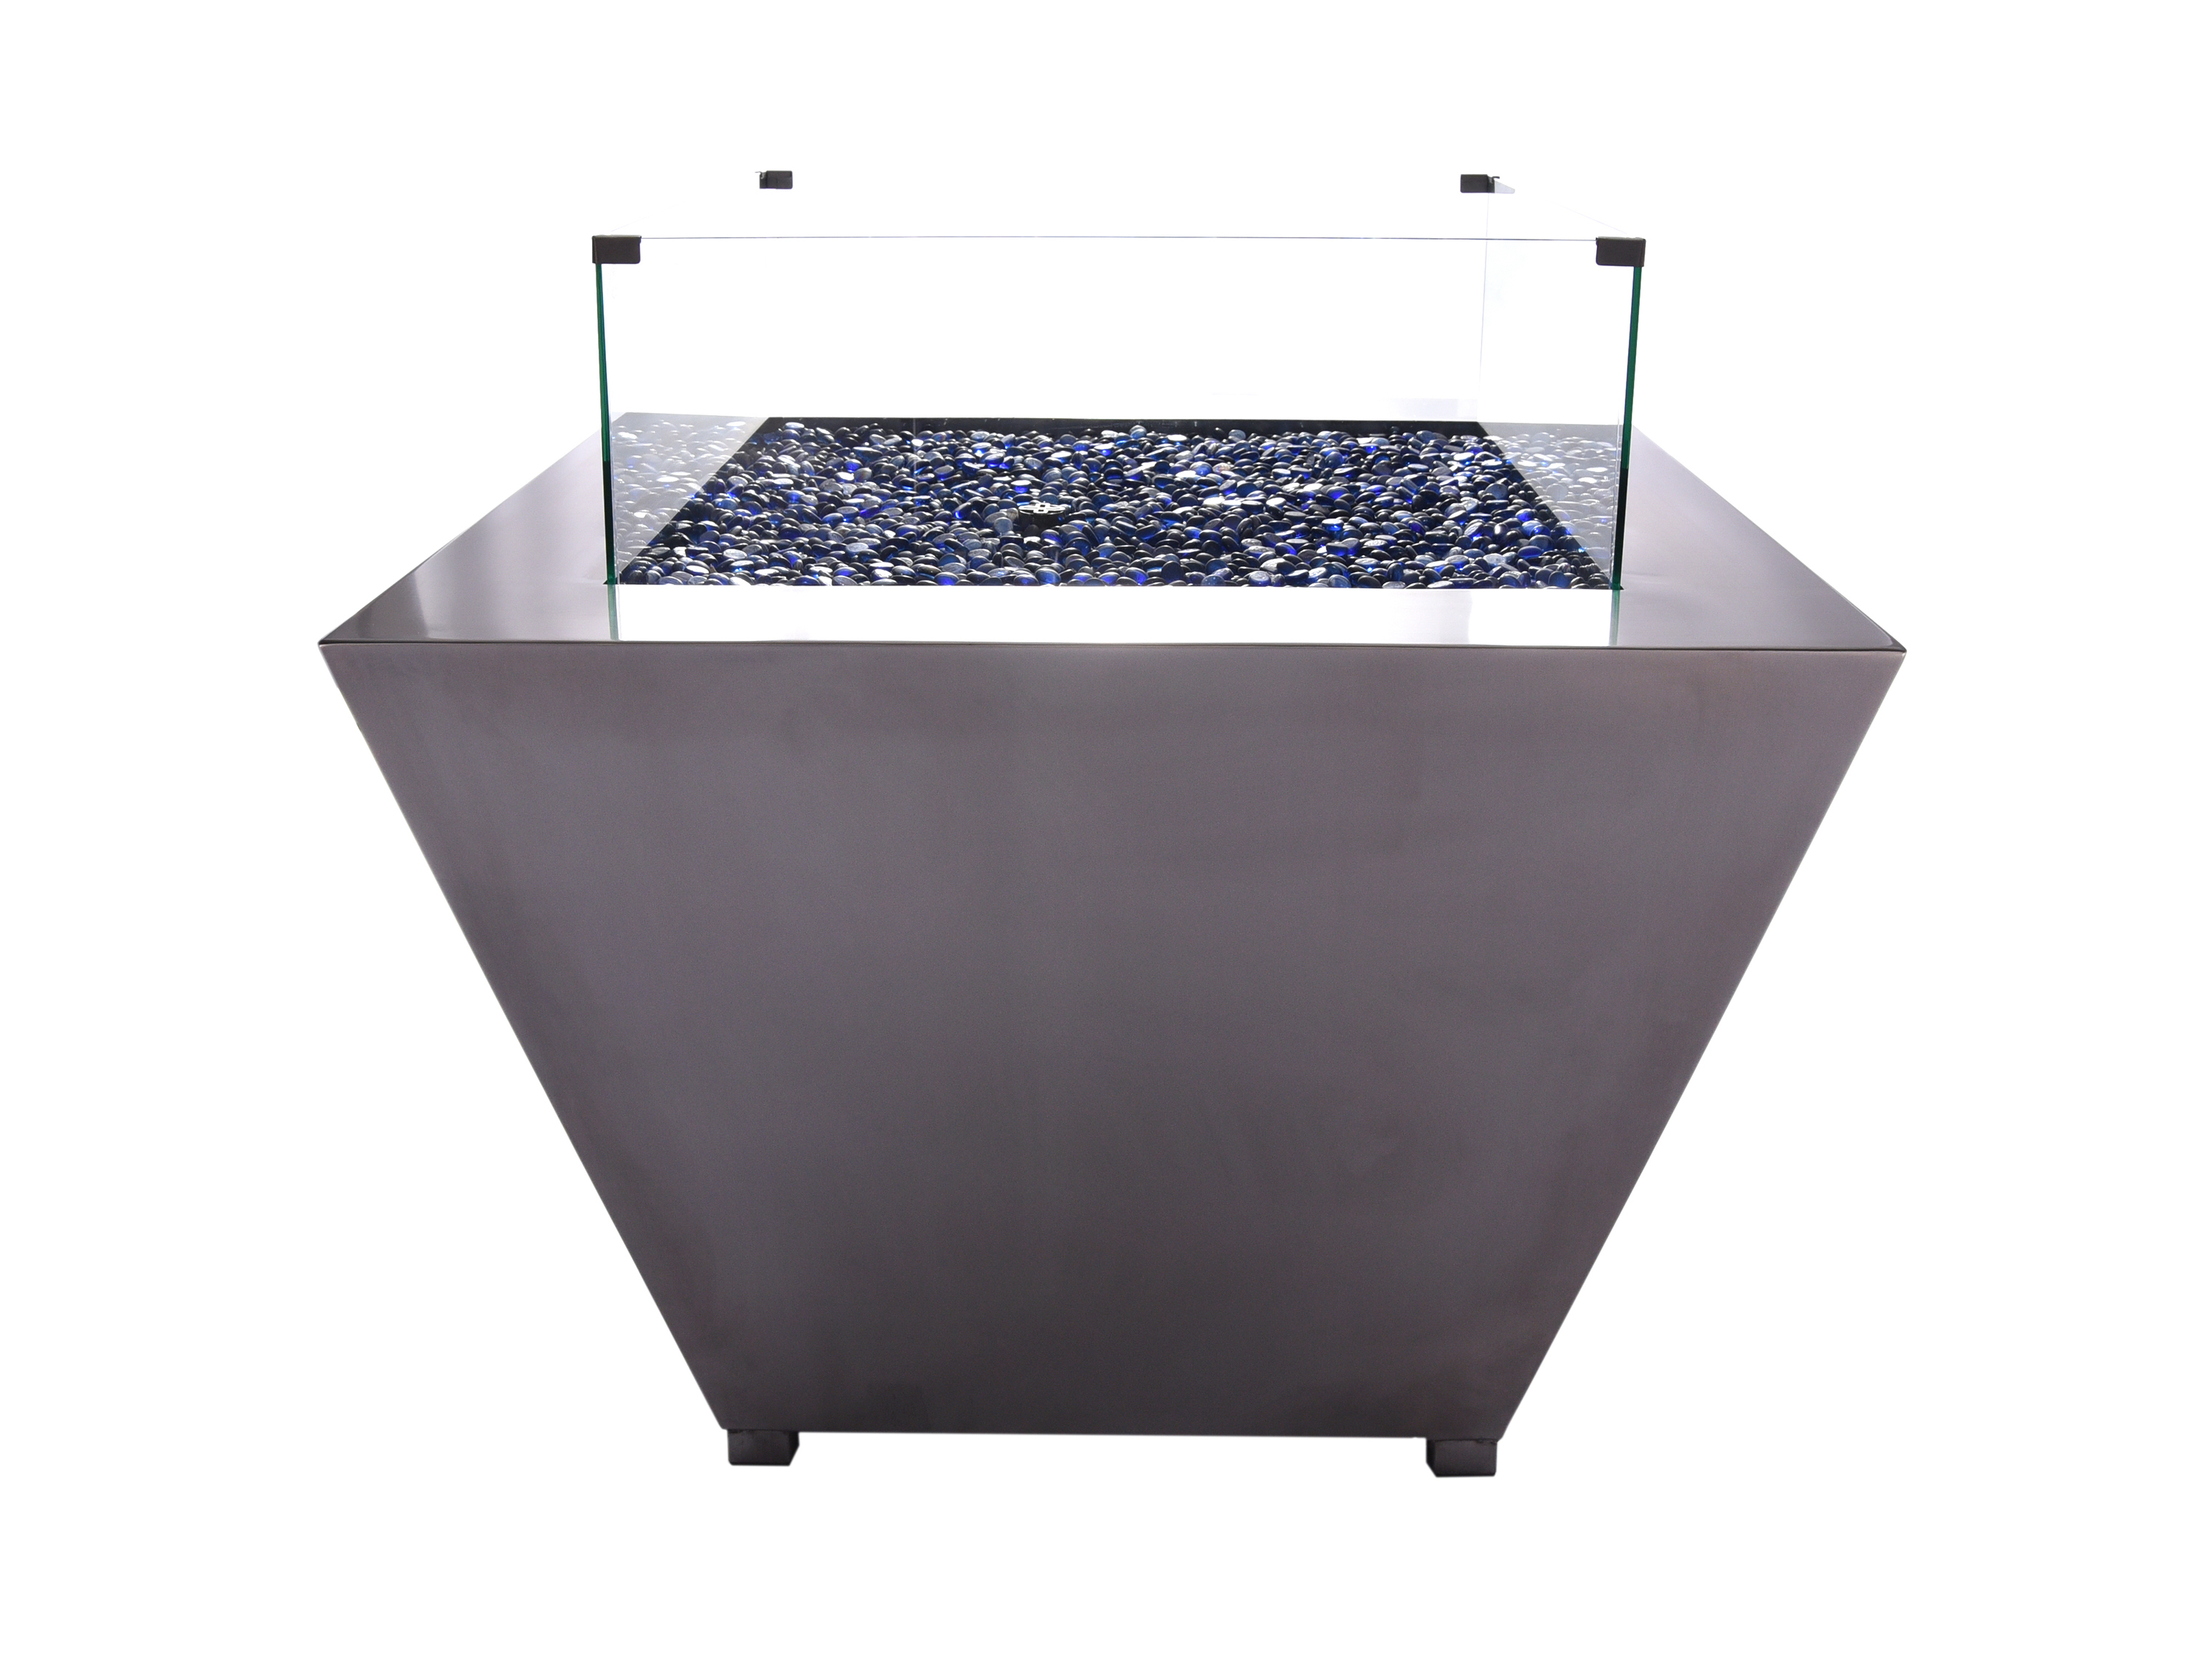 Square Stainless steel gas FirePit